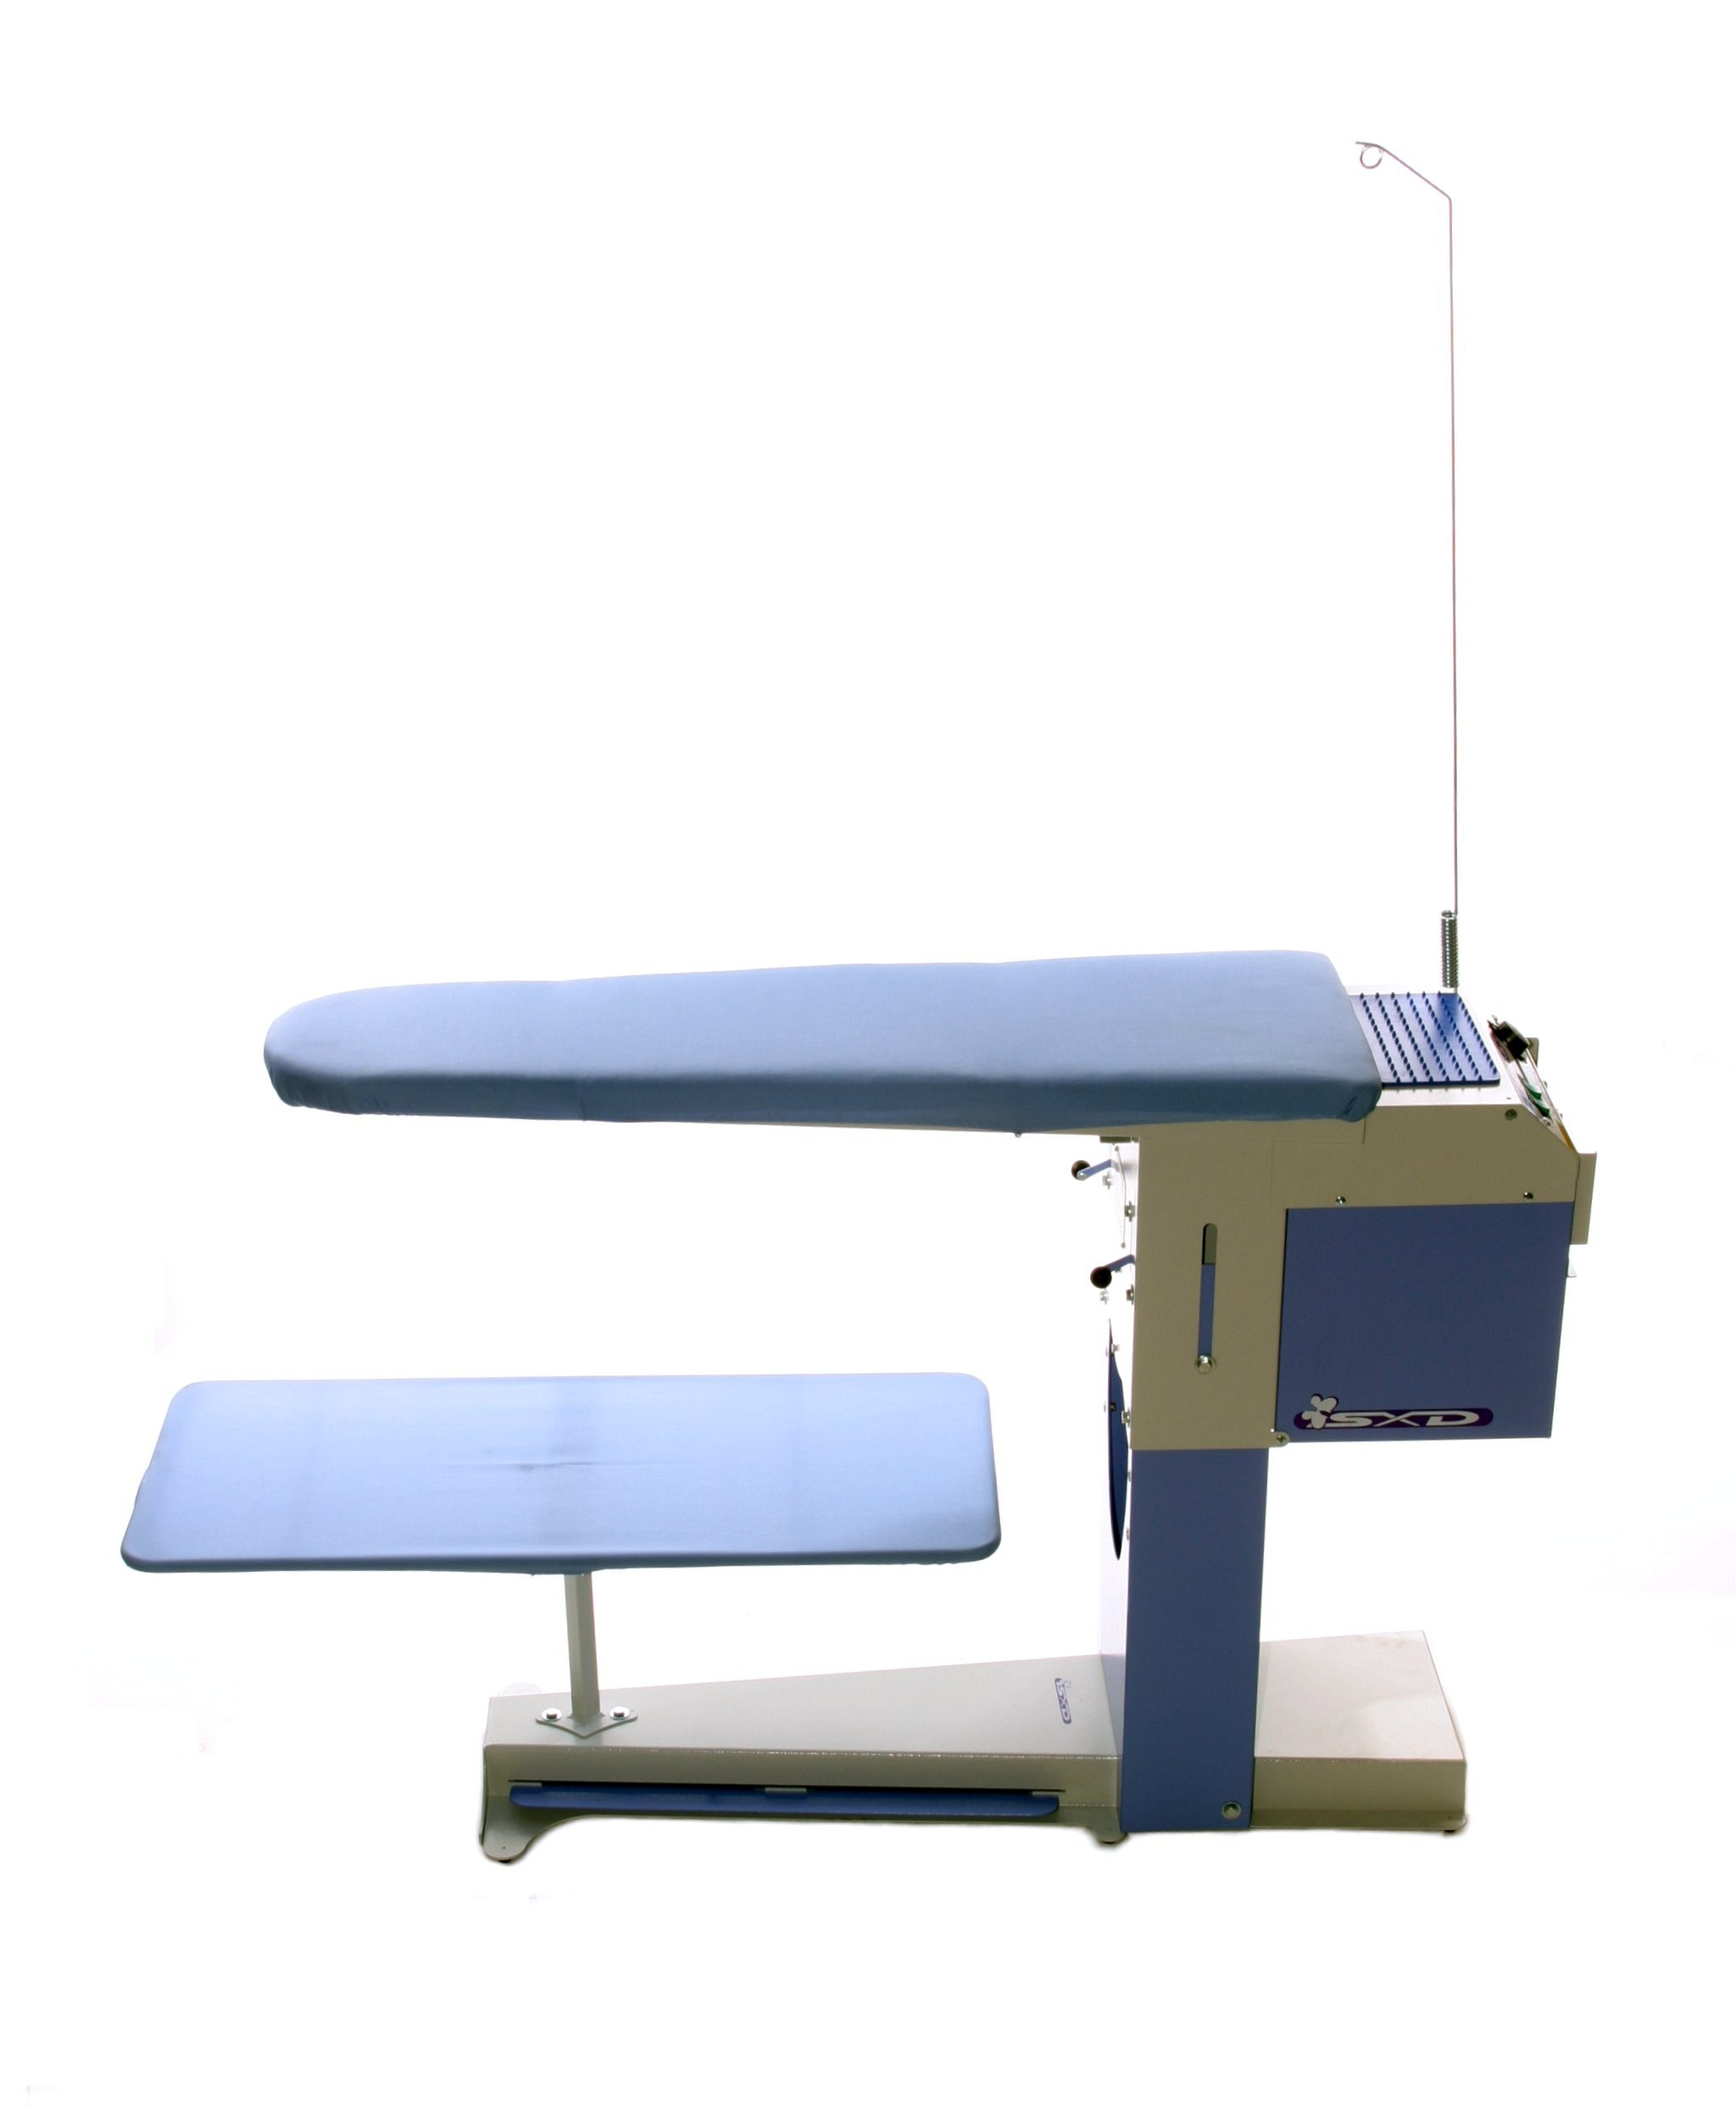 De luxe vacuum and heated ironing table speedypress for Couvert de table luxe